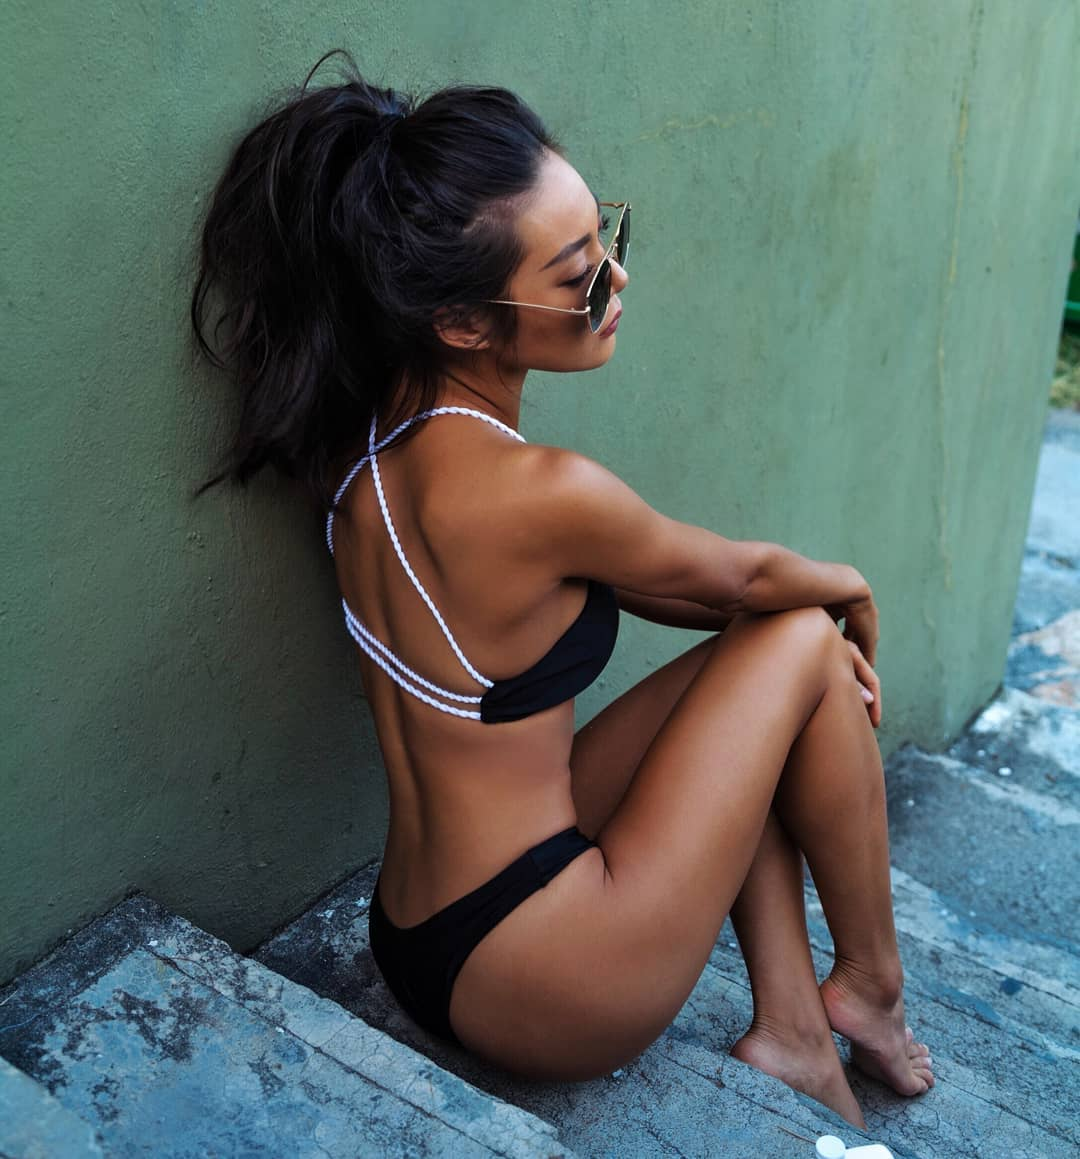 Black Bikini With White Knitted Straps For Summer 2020